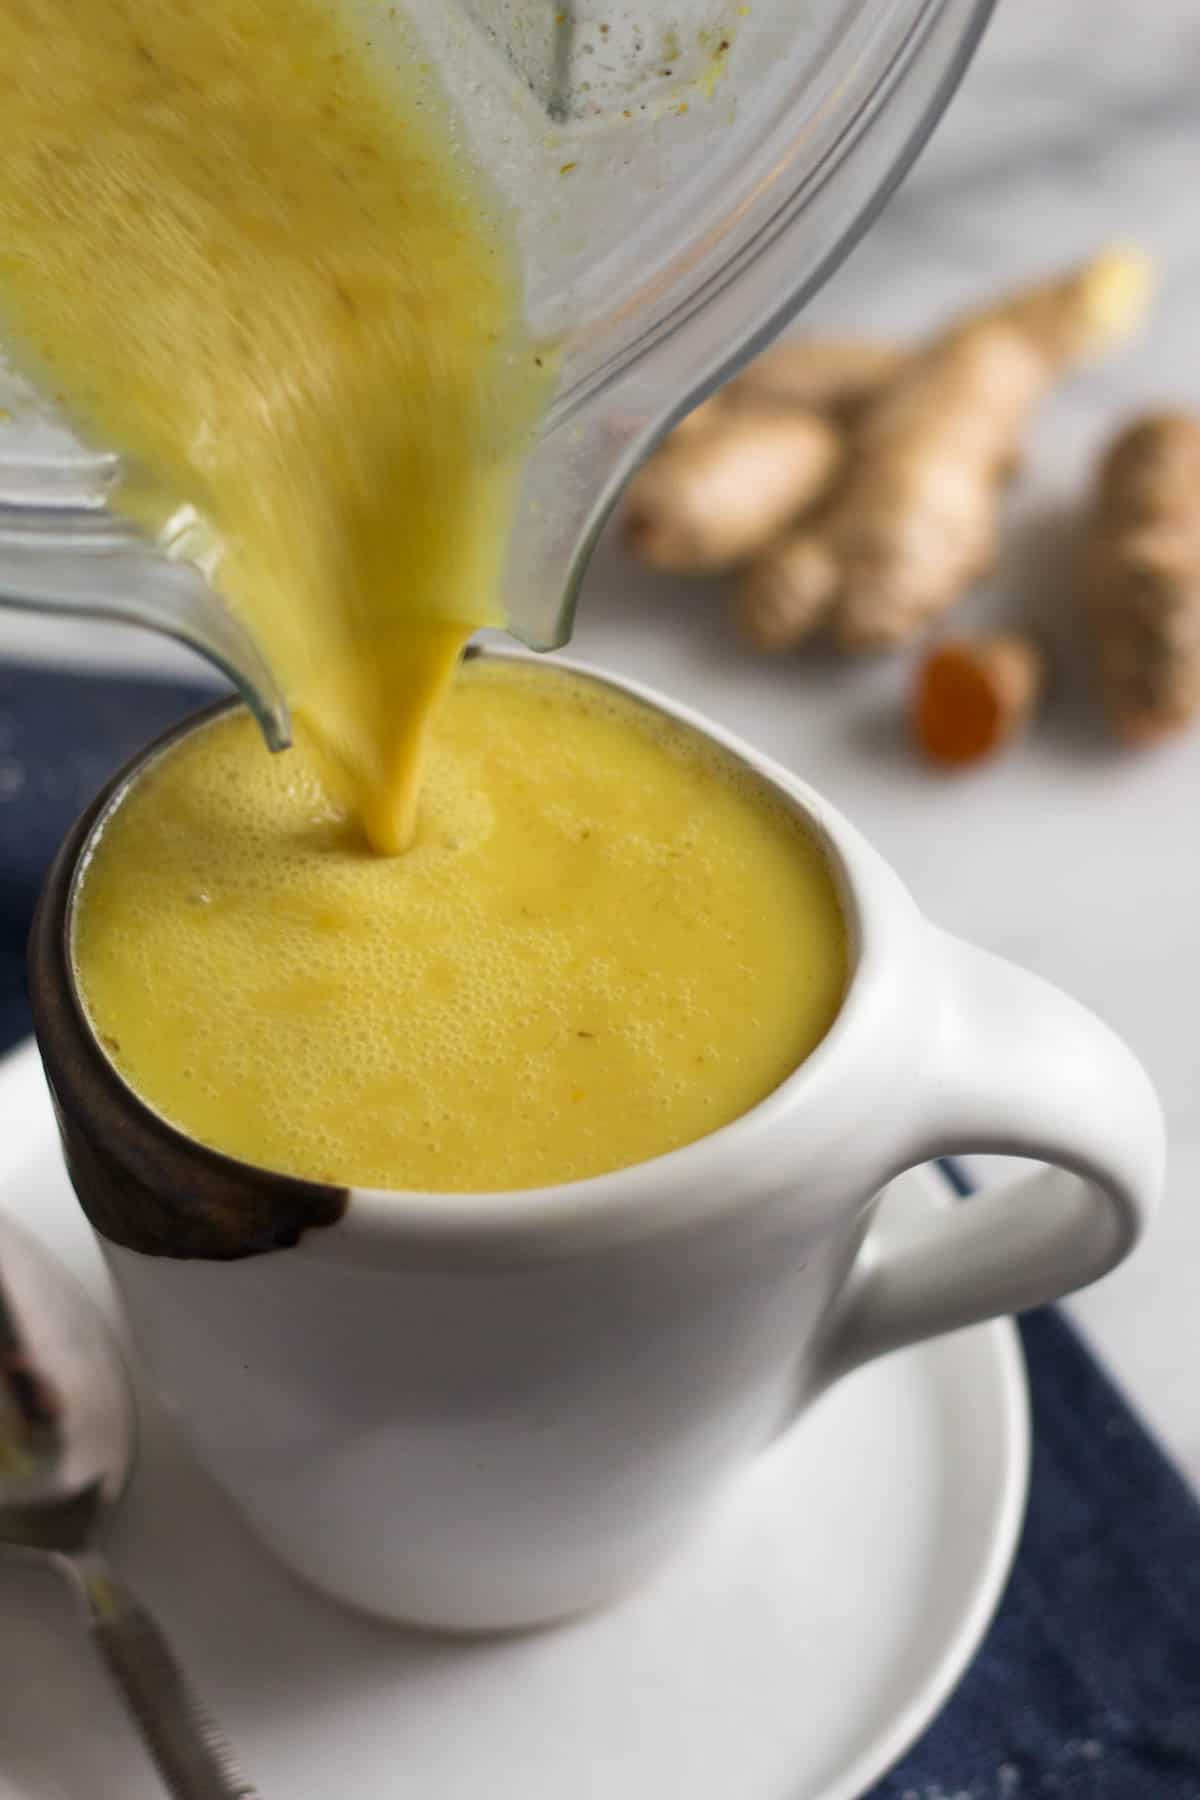 Golden milk turmeric latte being poured into a white mug on top of a plate